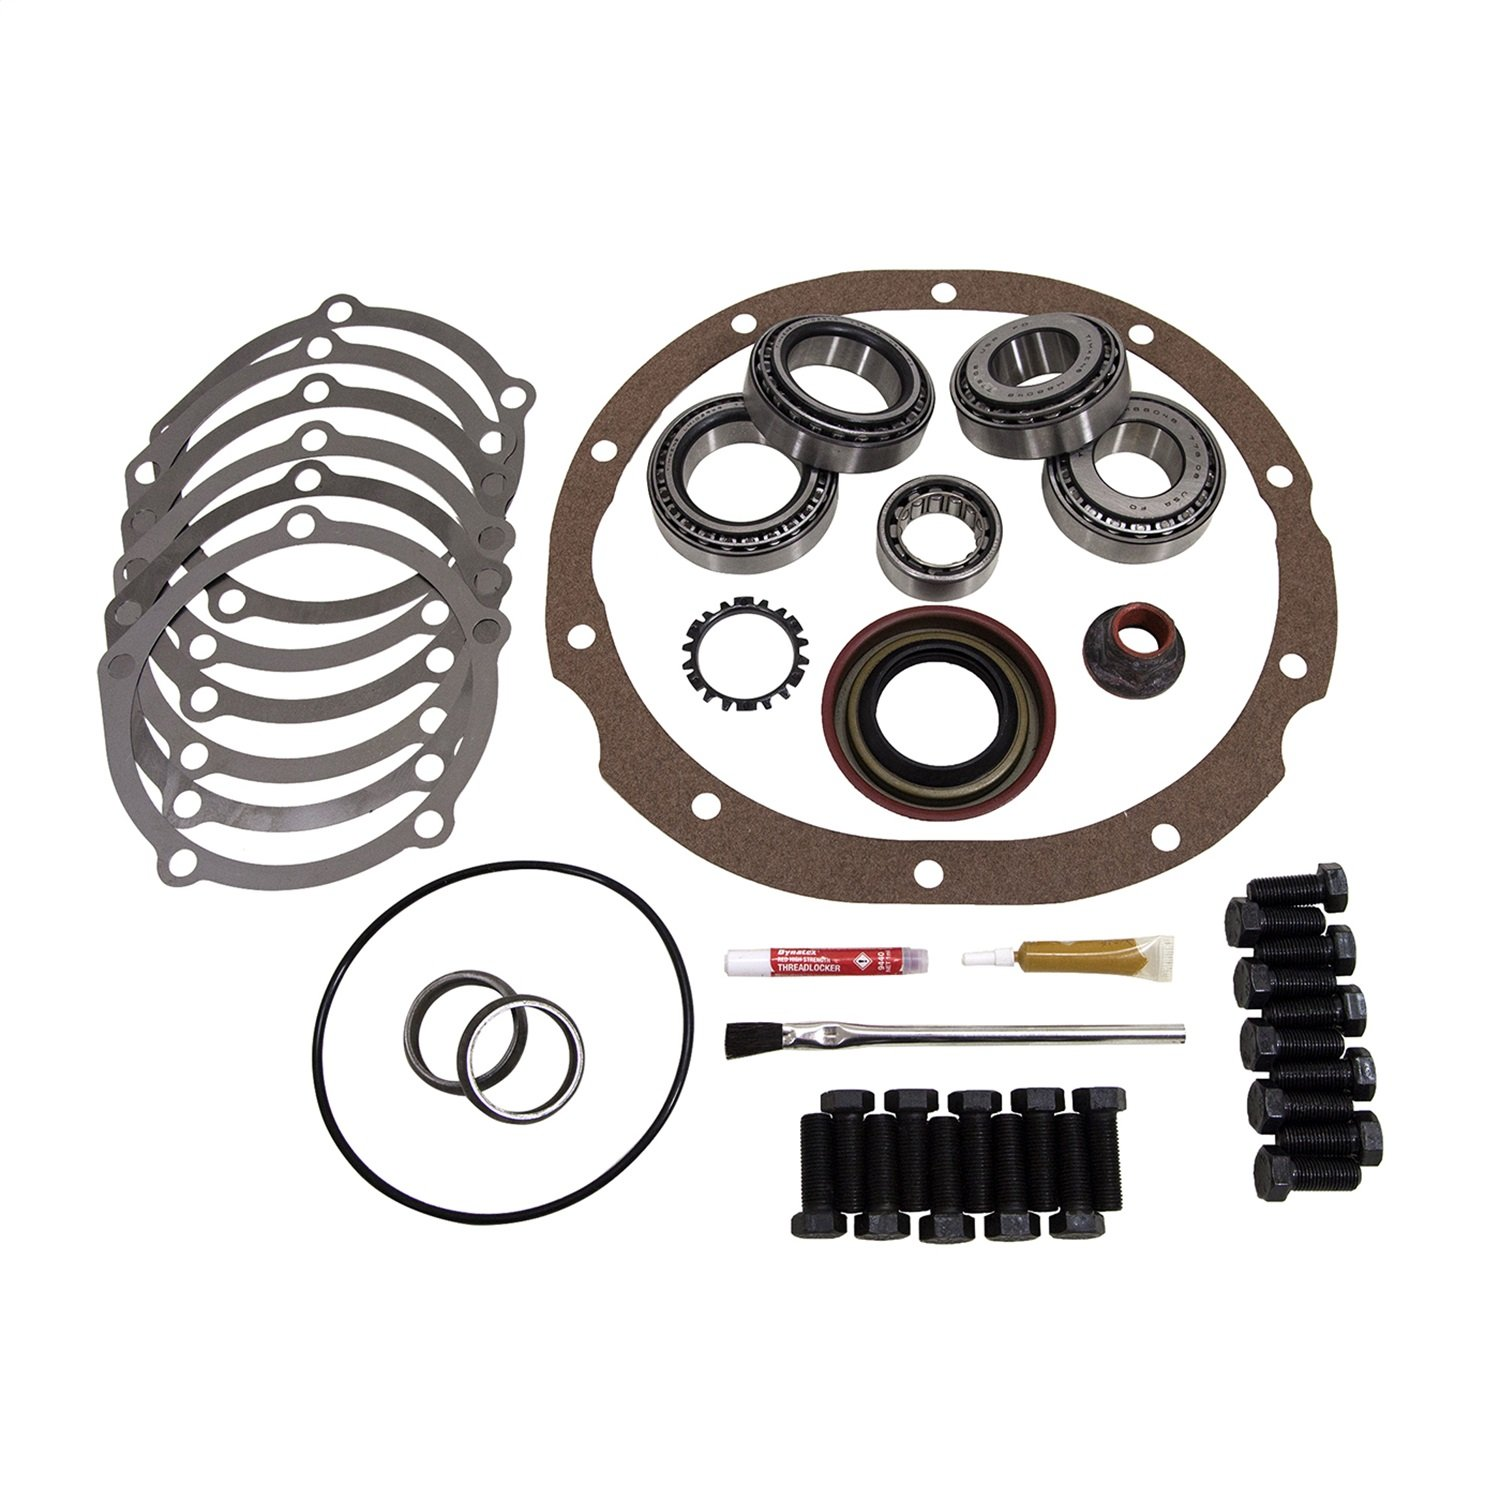 USA Standard Gear (ZK F9-A) Master Overhaul Kit for Ford 9'' LM102910 Differential